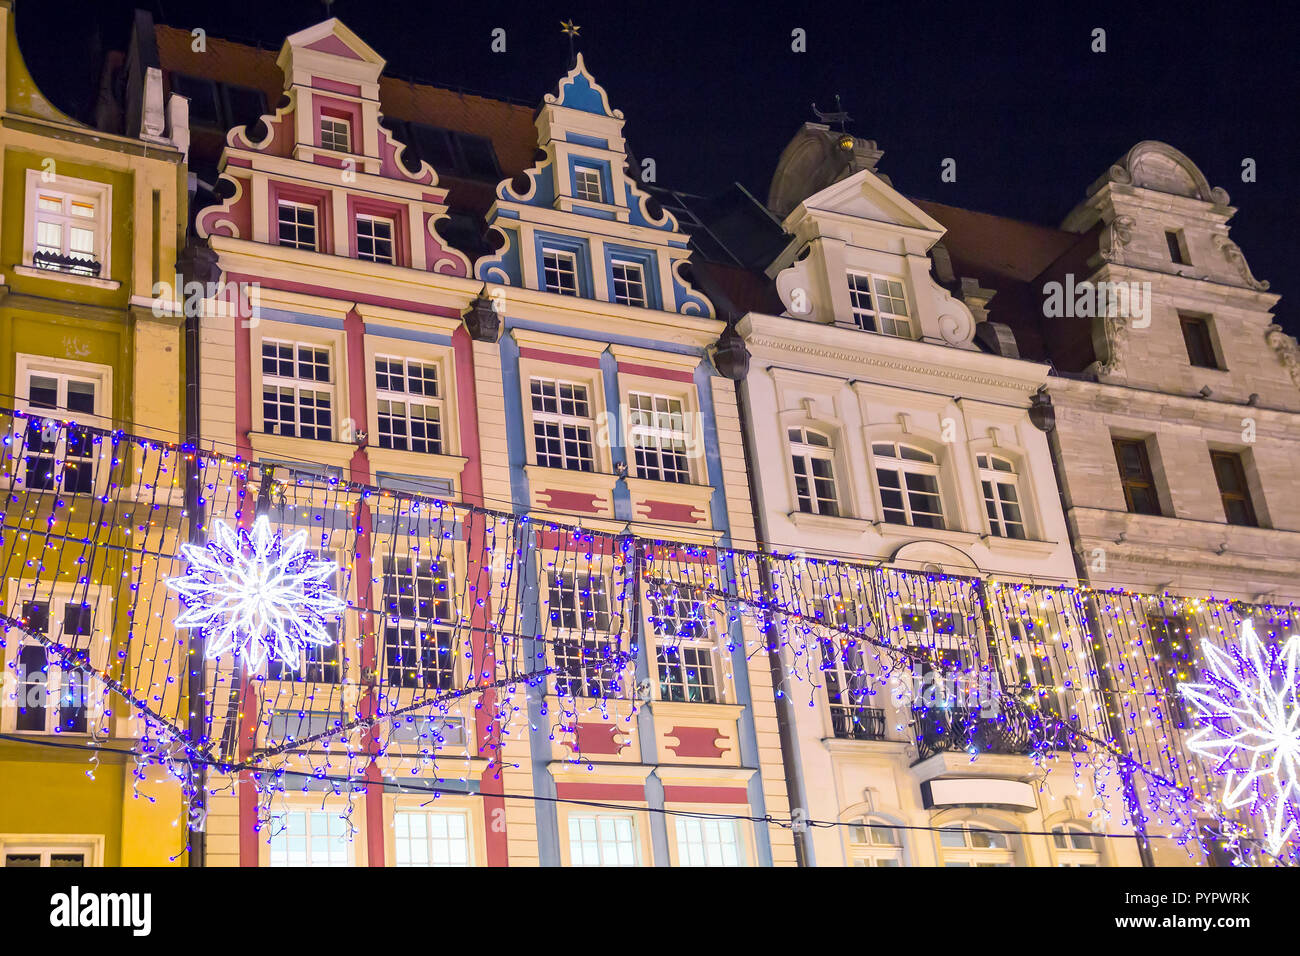 Beautiful old houses with holiday decoration on the central square of Wroclaw, Poland - Stock Image